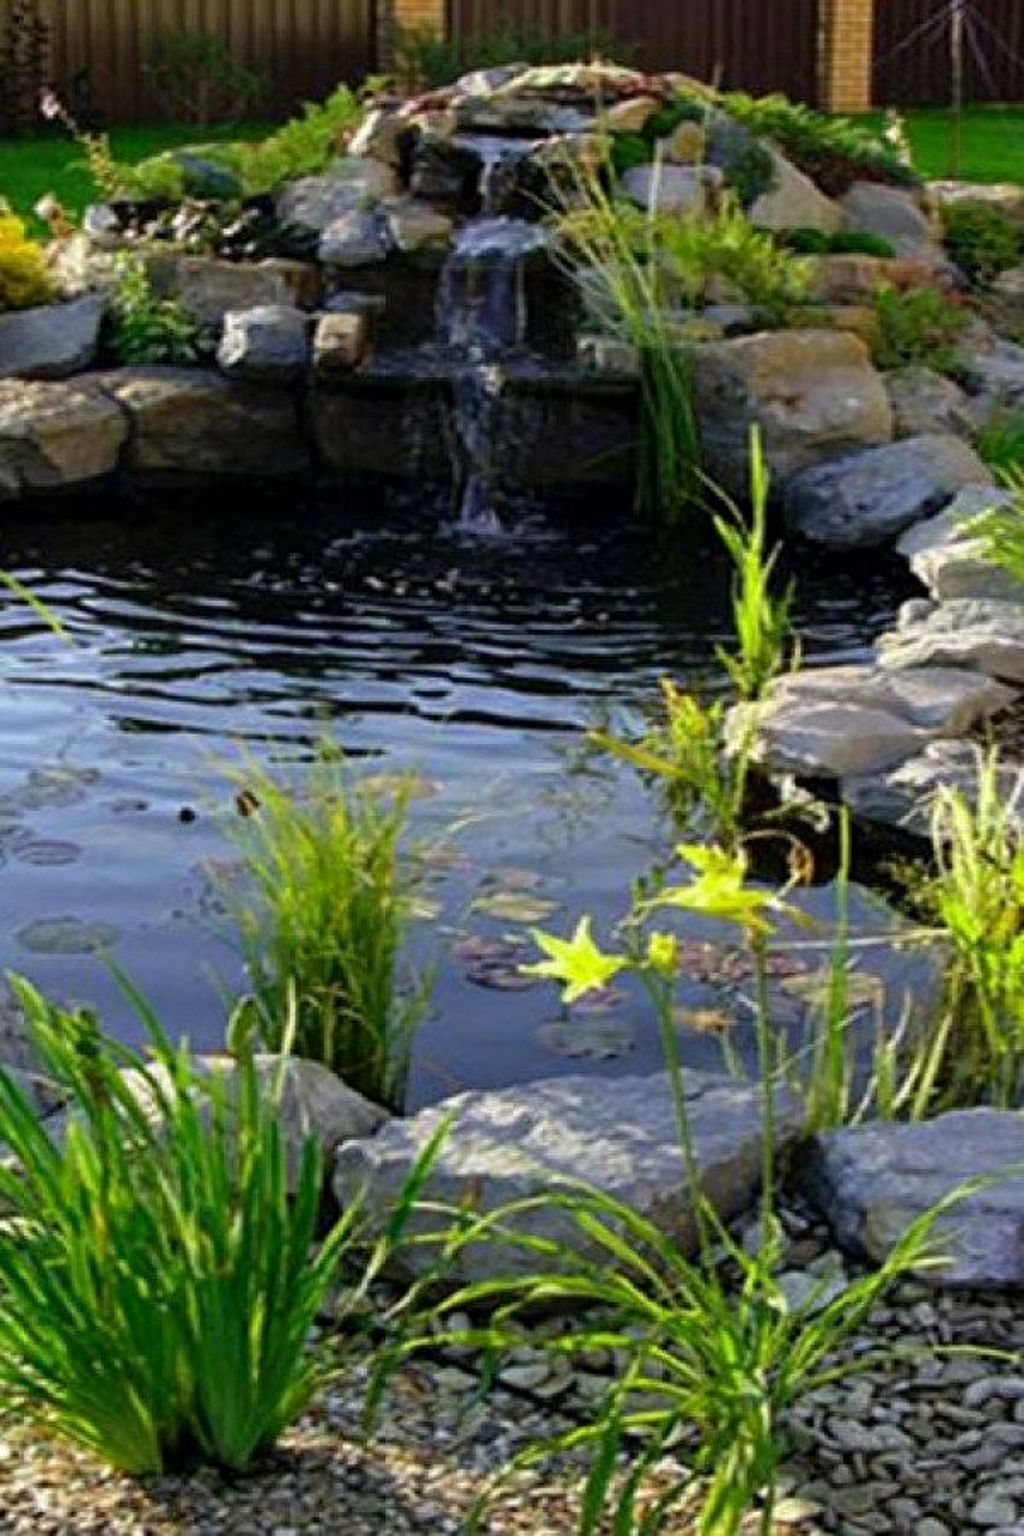 20 Cool Fish Pond Garden Landscaping Ideas For Backyard In 2020 Pond Landscaping Garden Pond Design Fish Pond Gardens